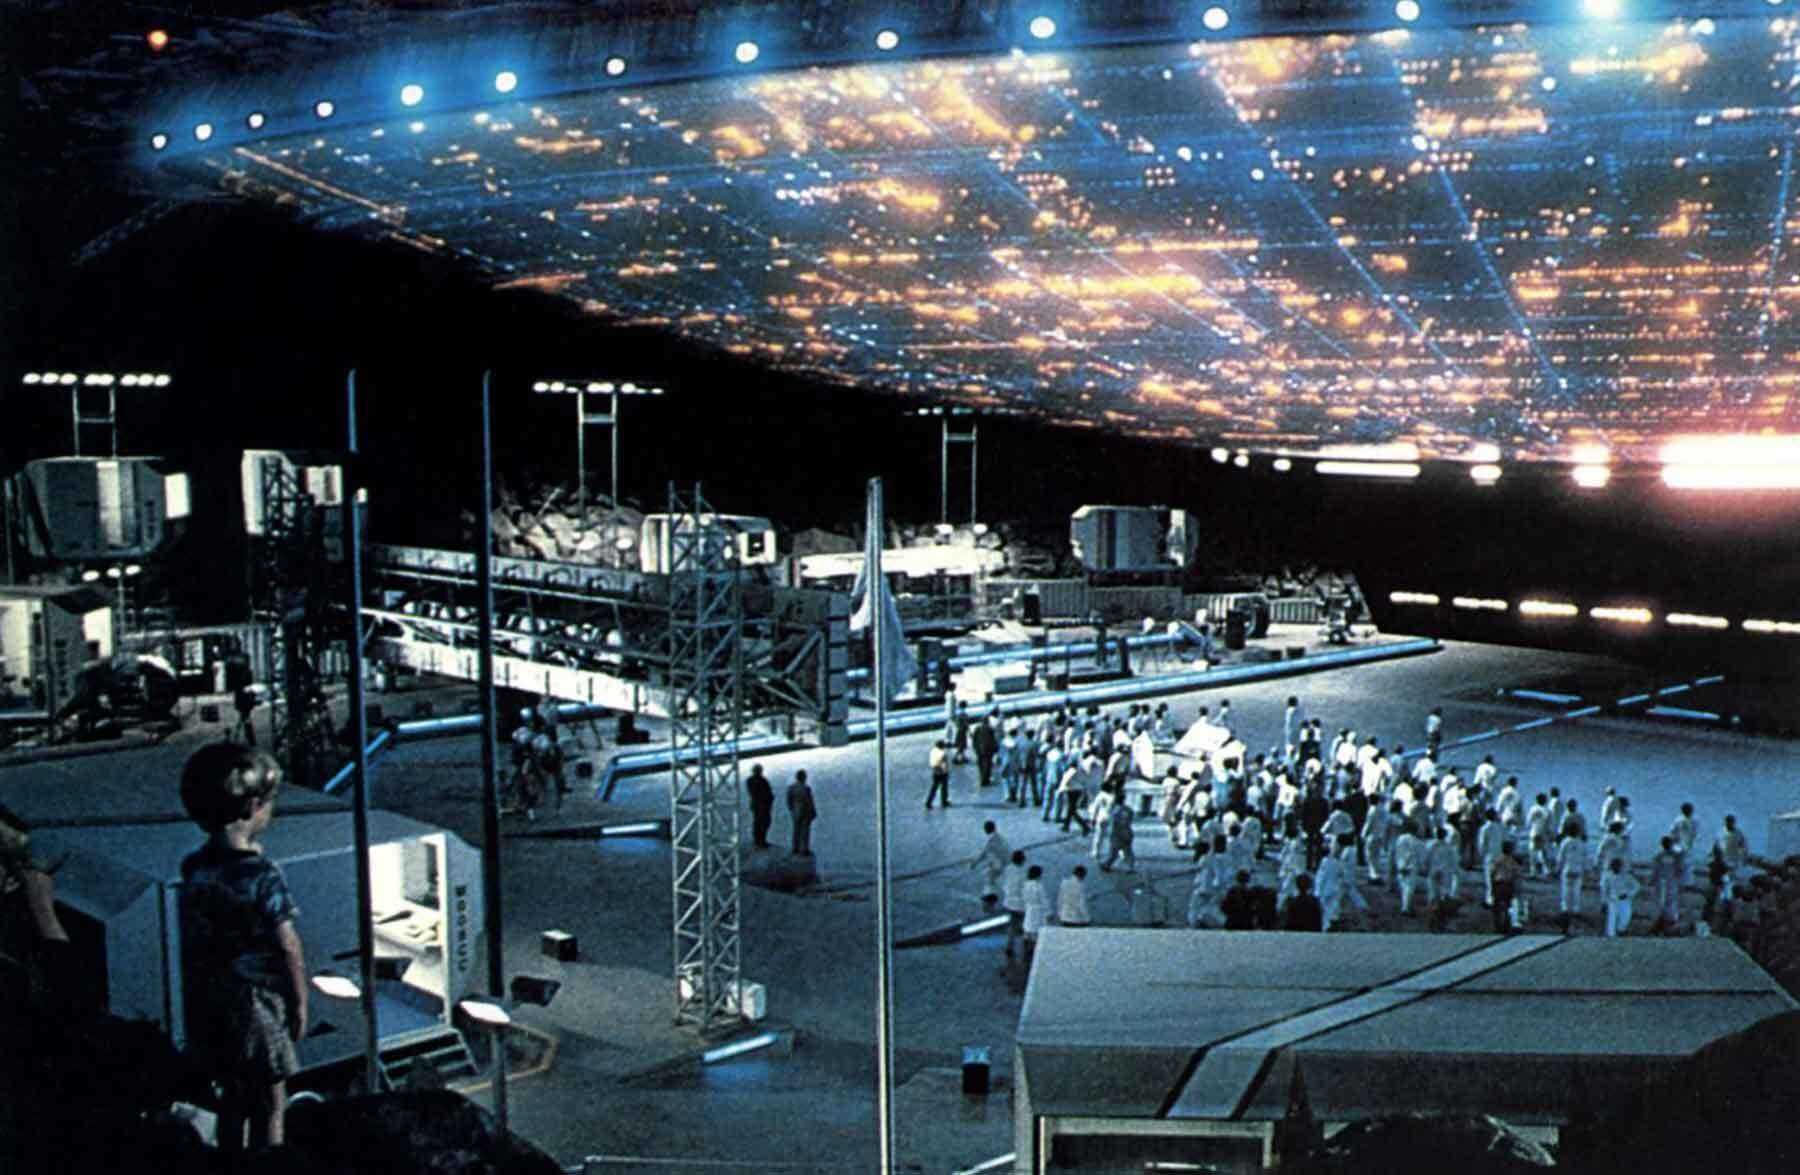 Still from Close Encounters of the Third Kind, 1977. Courtesy of Colombia/EMI film/Alamy